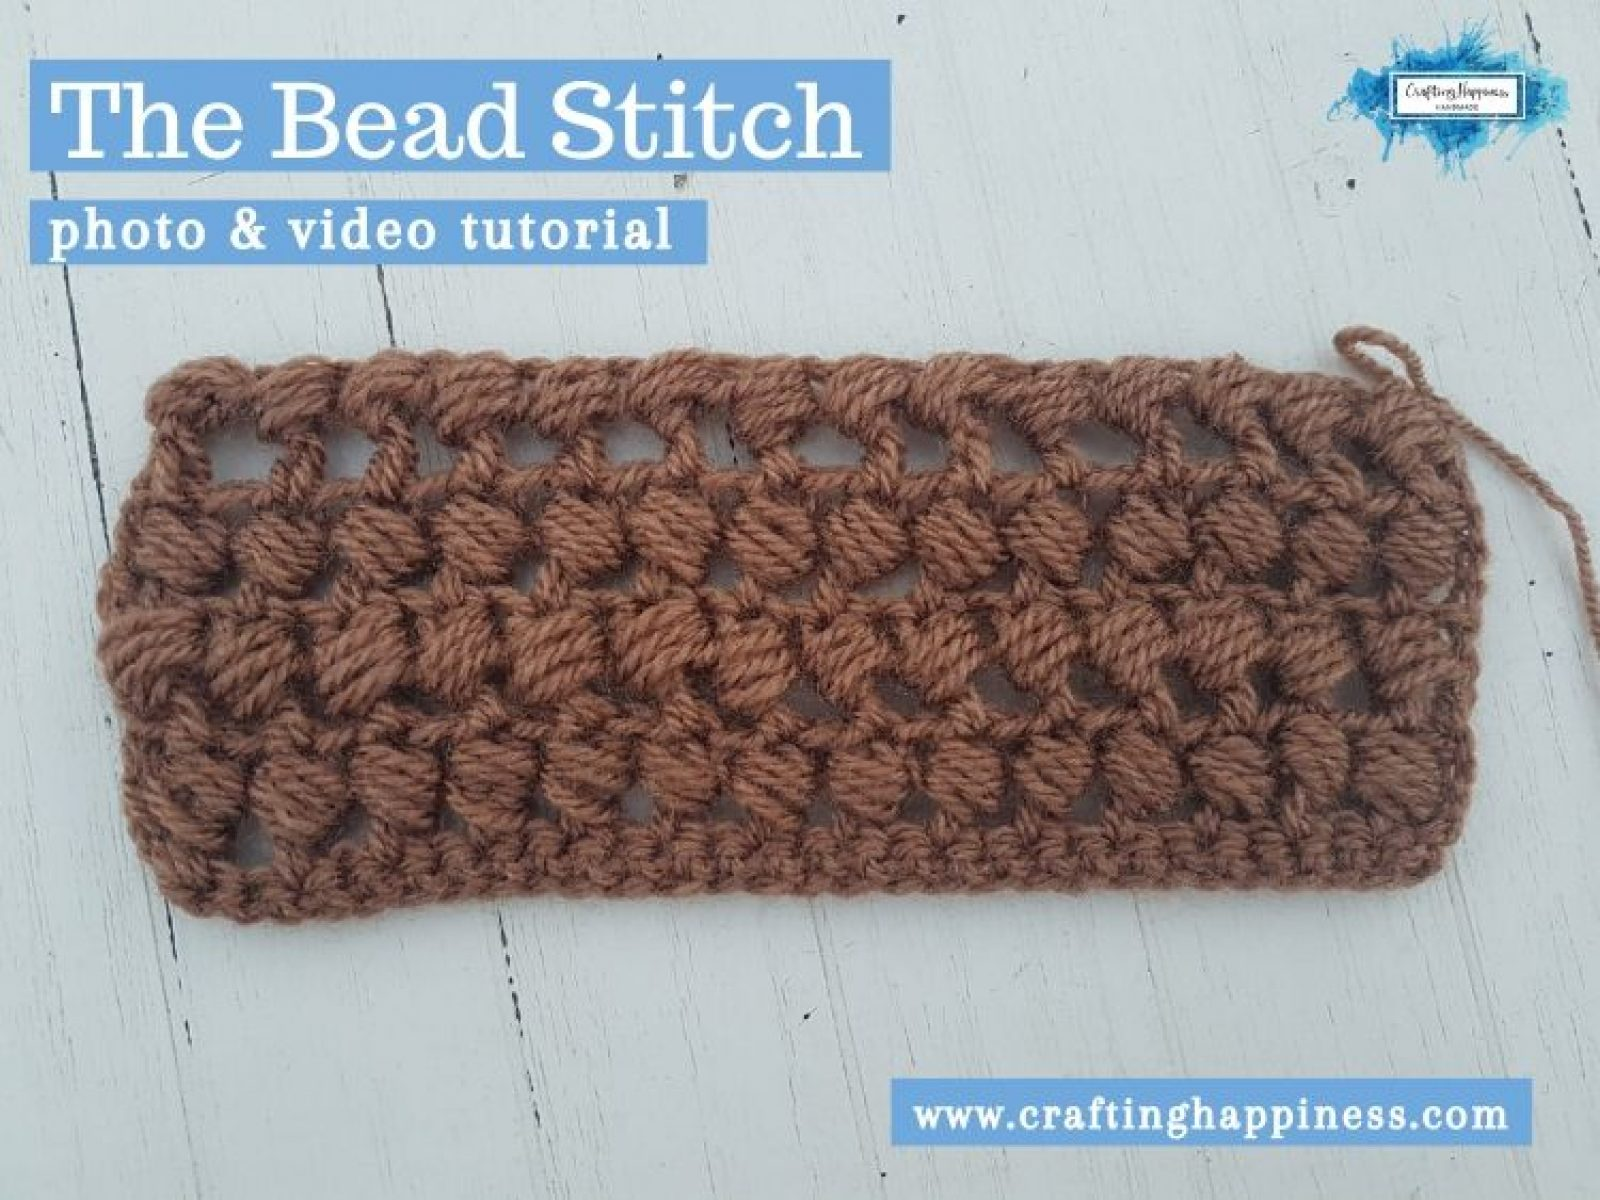 Crochet Bead Stitch by Crafting Happiness FACEBOOK POSTER